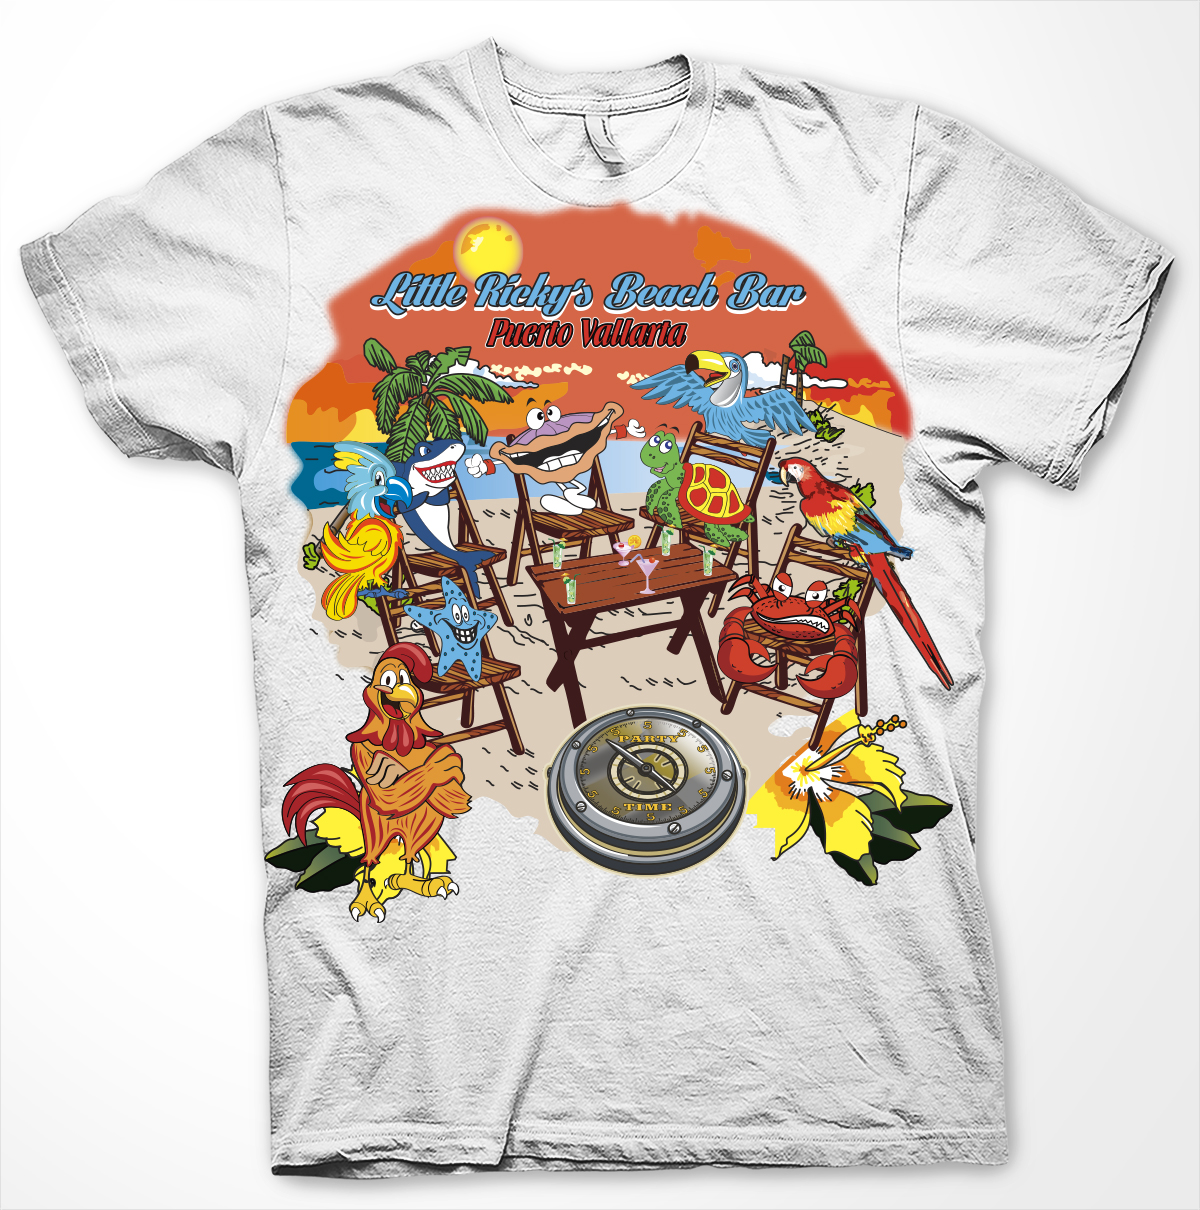 42 professional t shirt designs for a business in united for Restaurant t shirt ideas